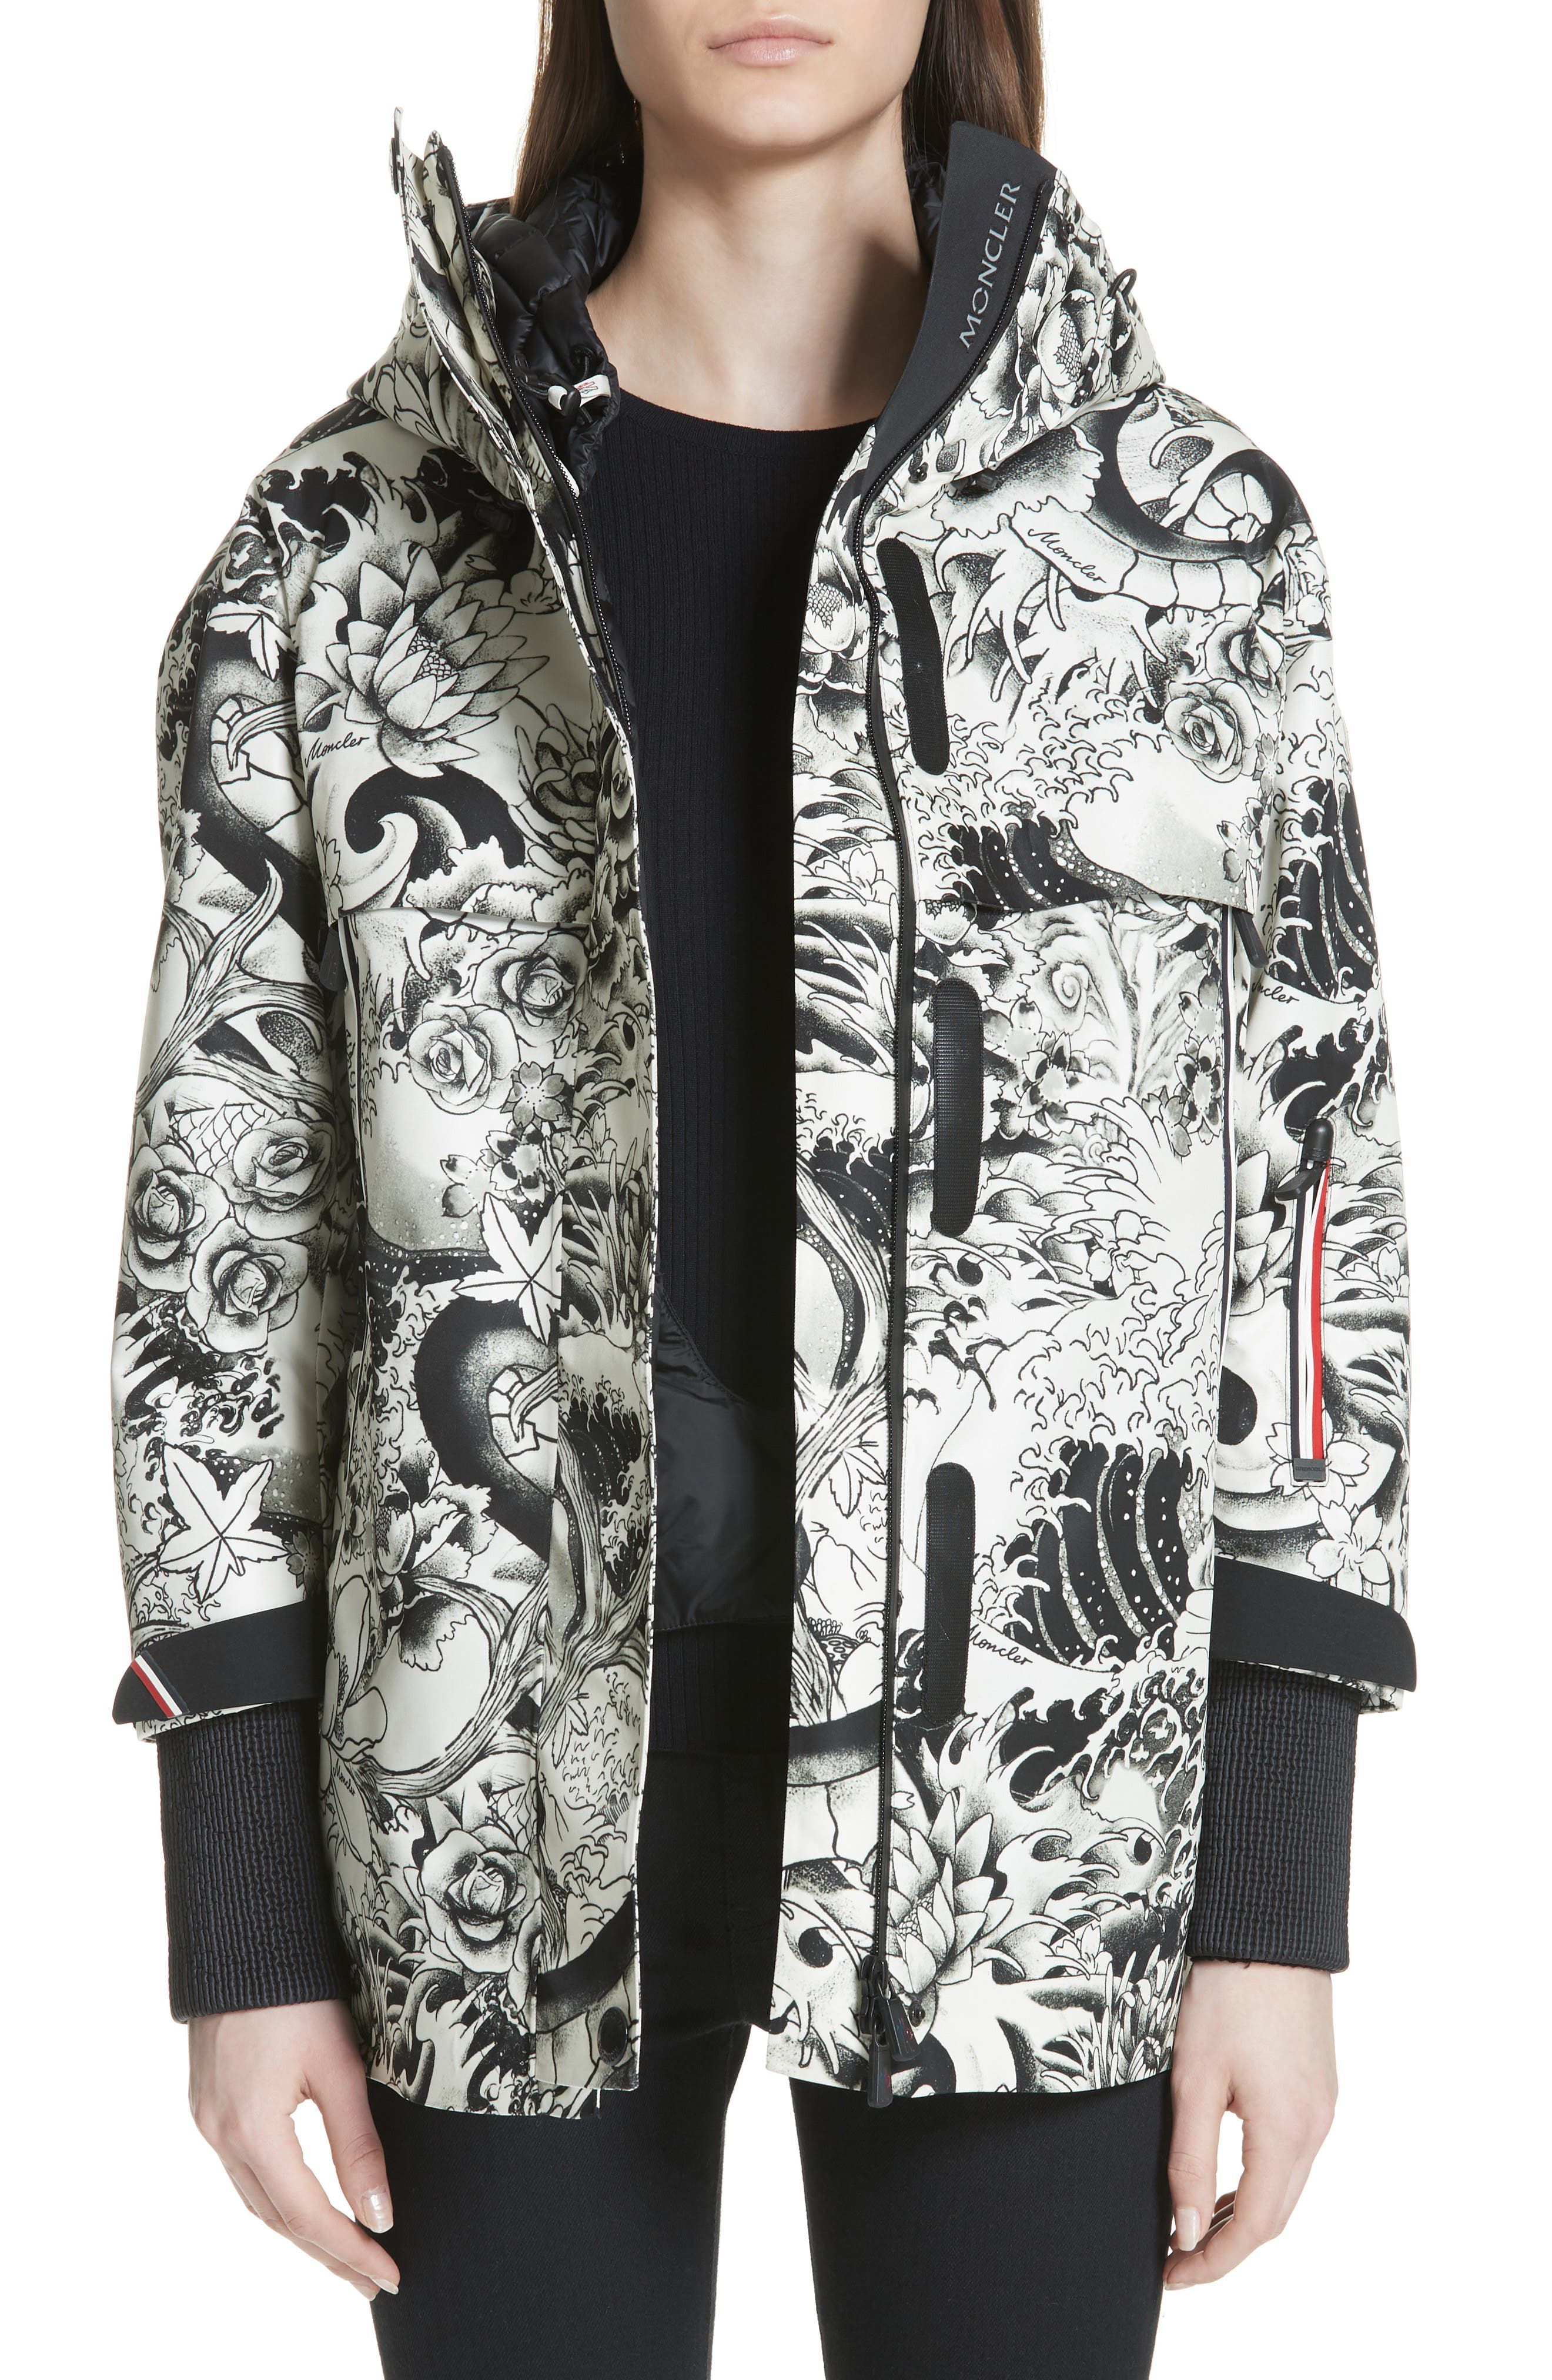 MONCLER, Neves Tattoo Print Hooded Down Coat, Main thumbnail 1, color, BLACK